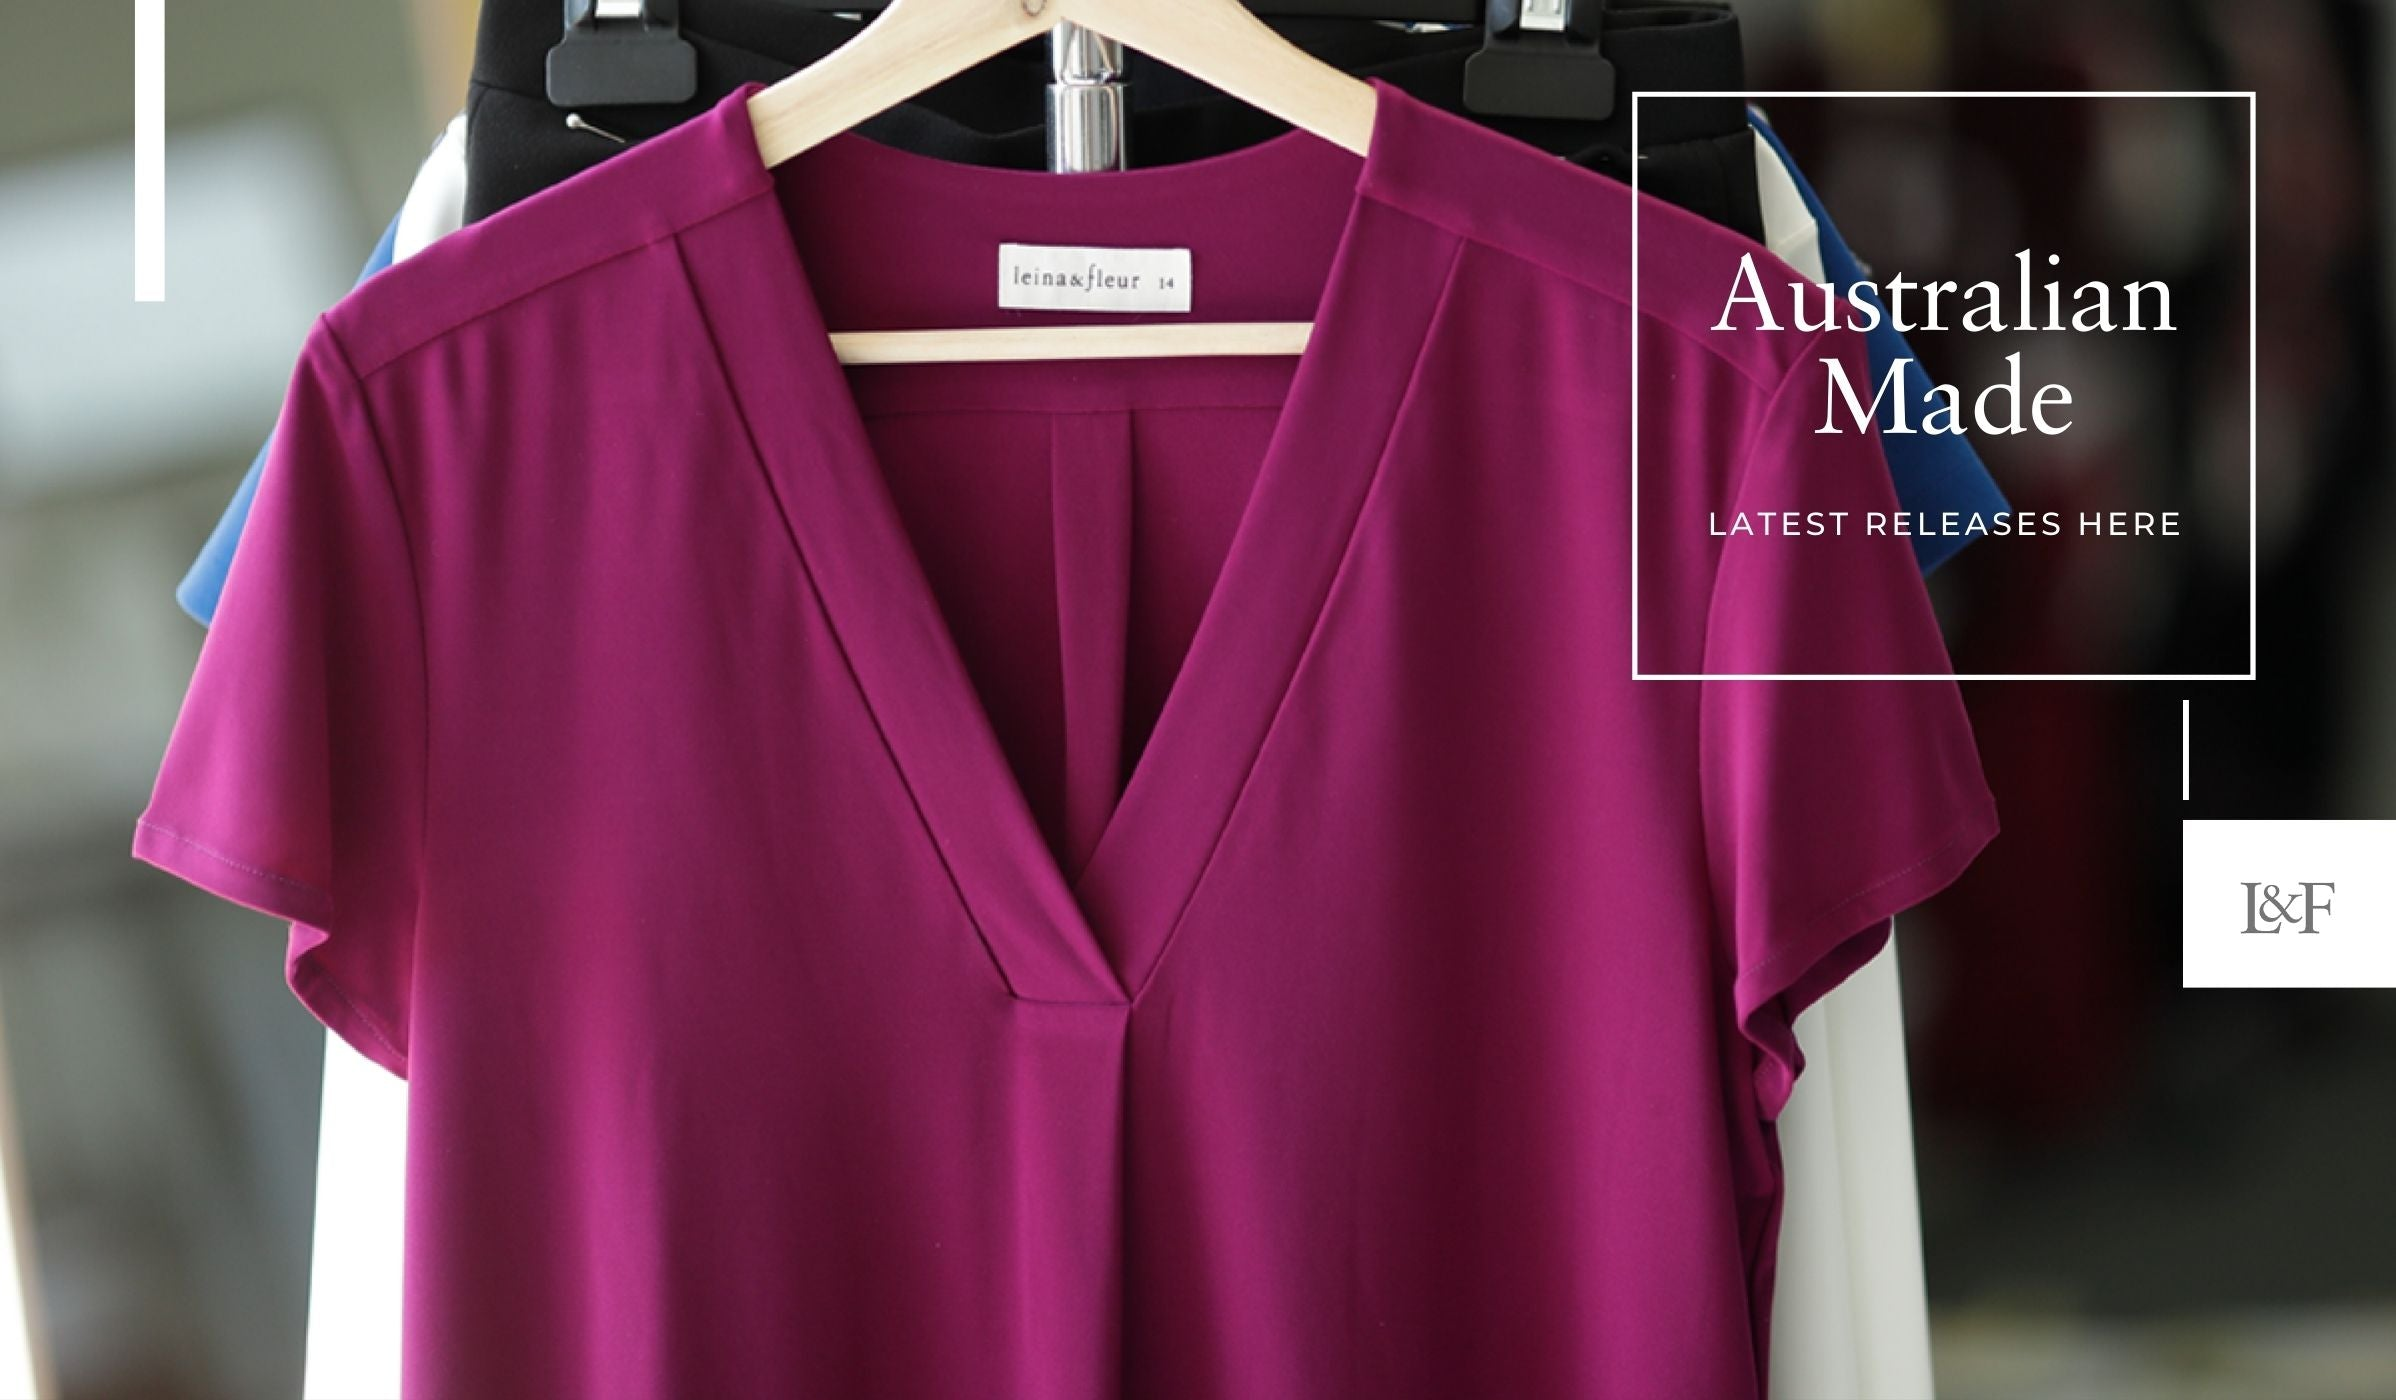 Australian Made Products with Magenta Shirt and Australian Designed Label